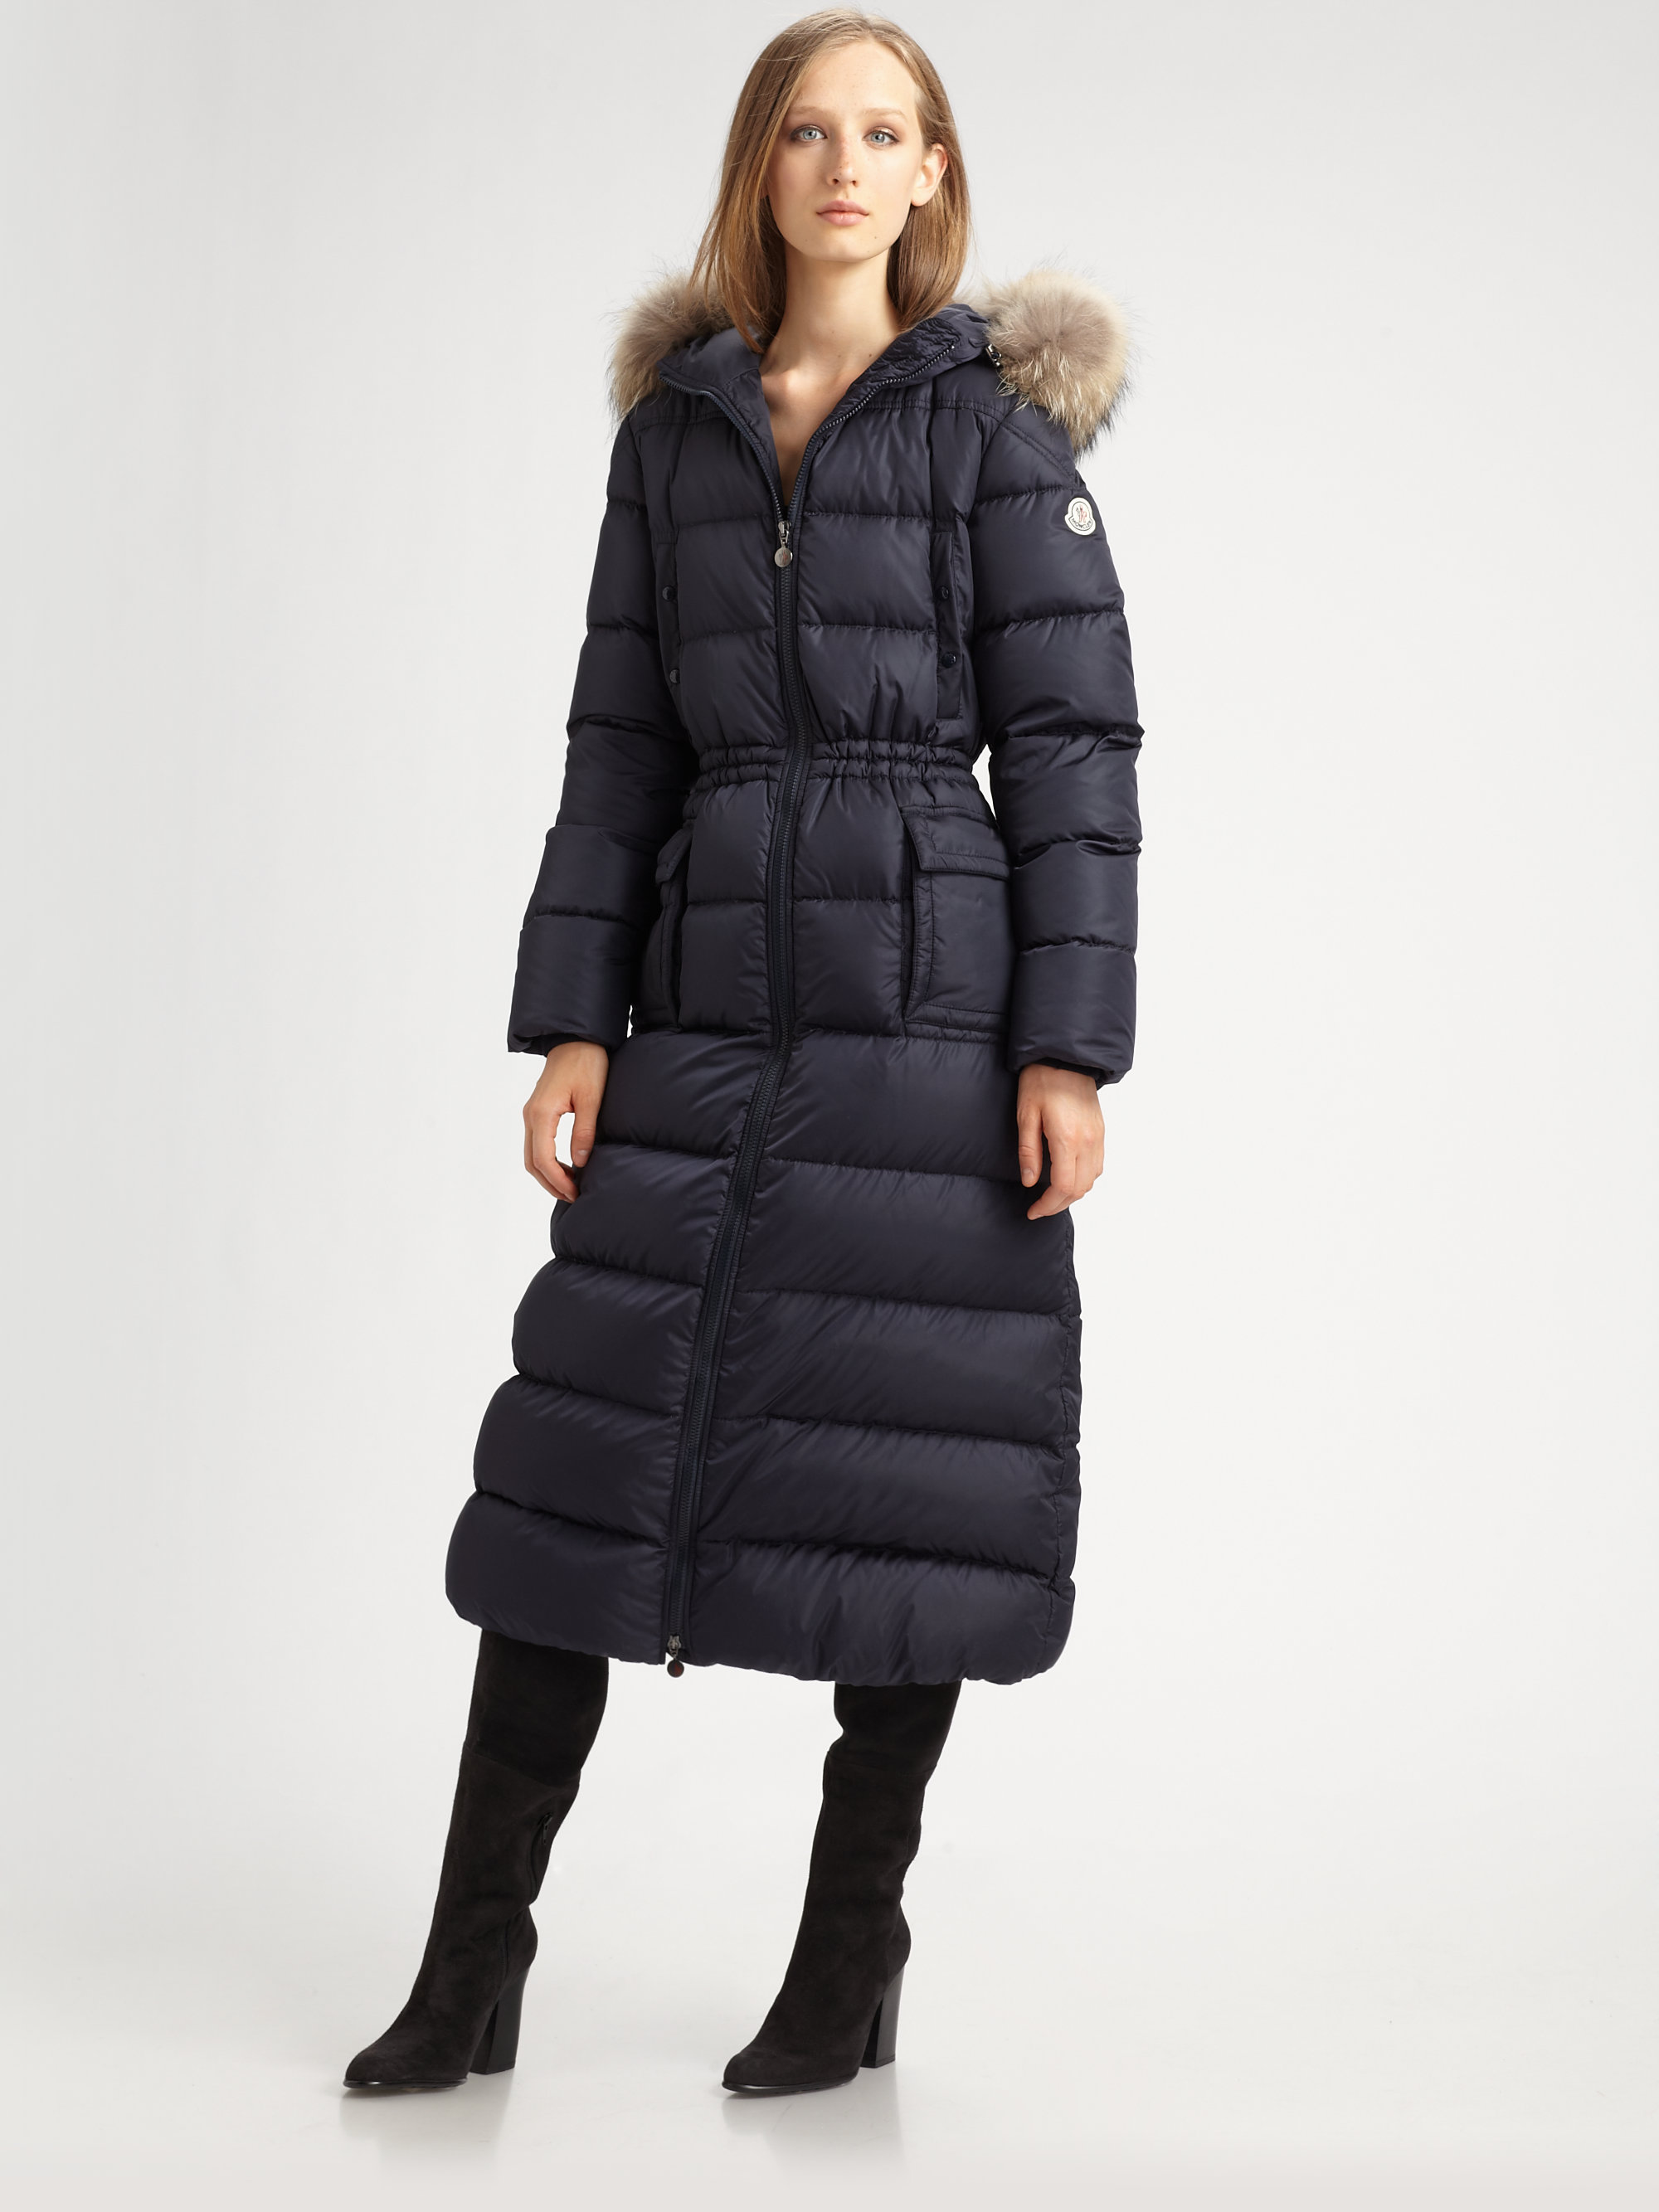 long puffer coat gallery bcwruyf